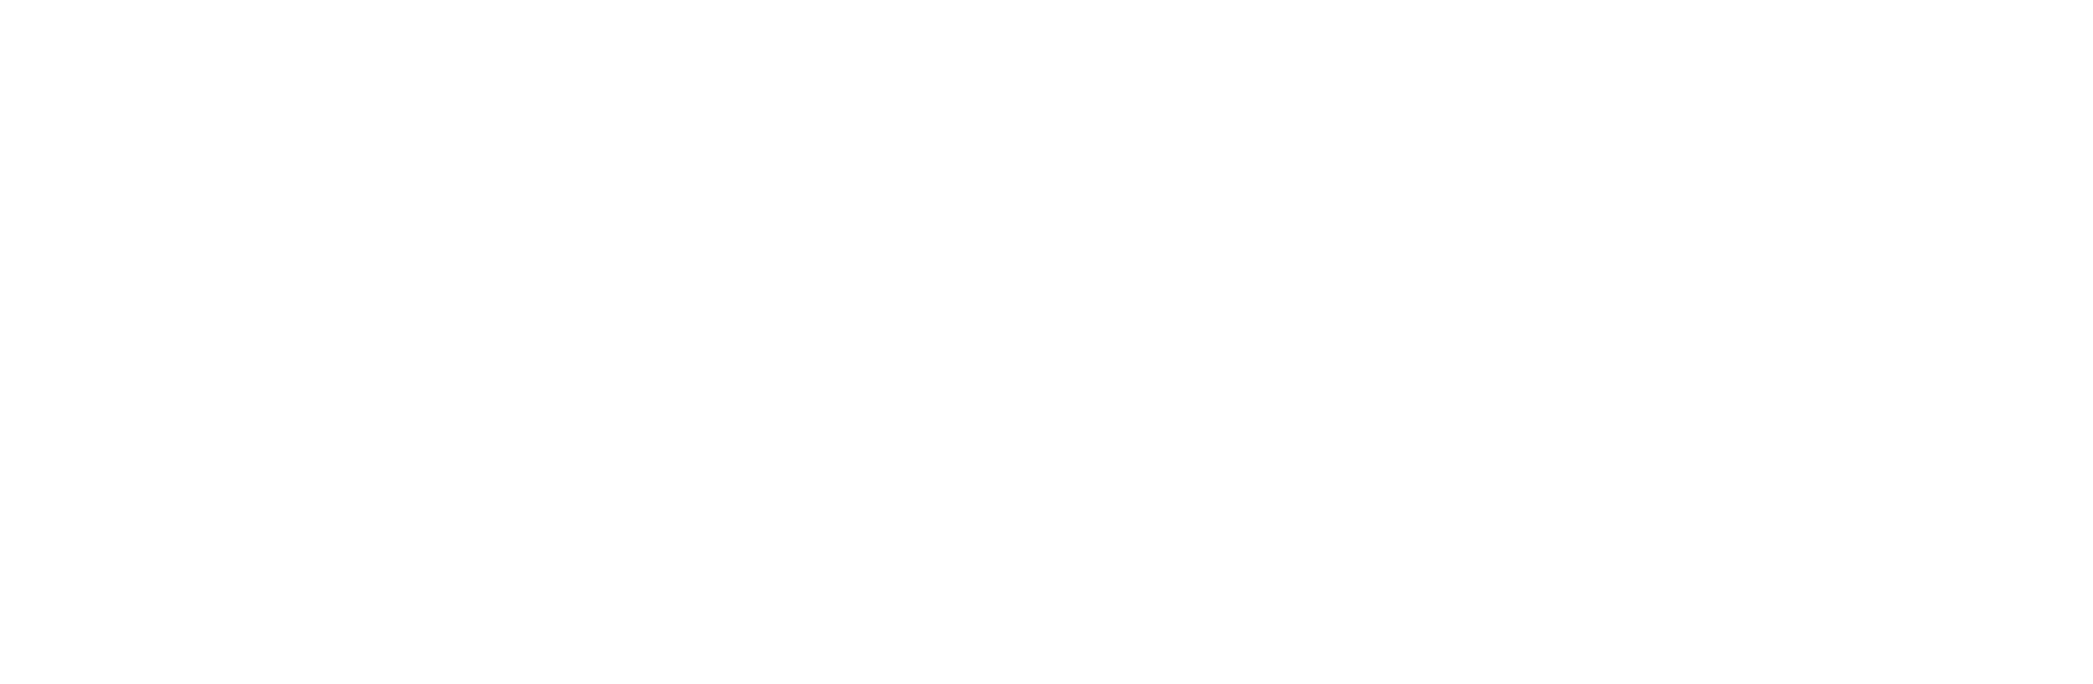 The logo for The Courtyards at Linden Pointe in Winnipeg, Manitoba